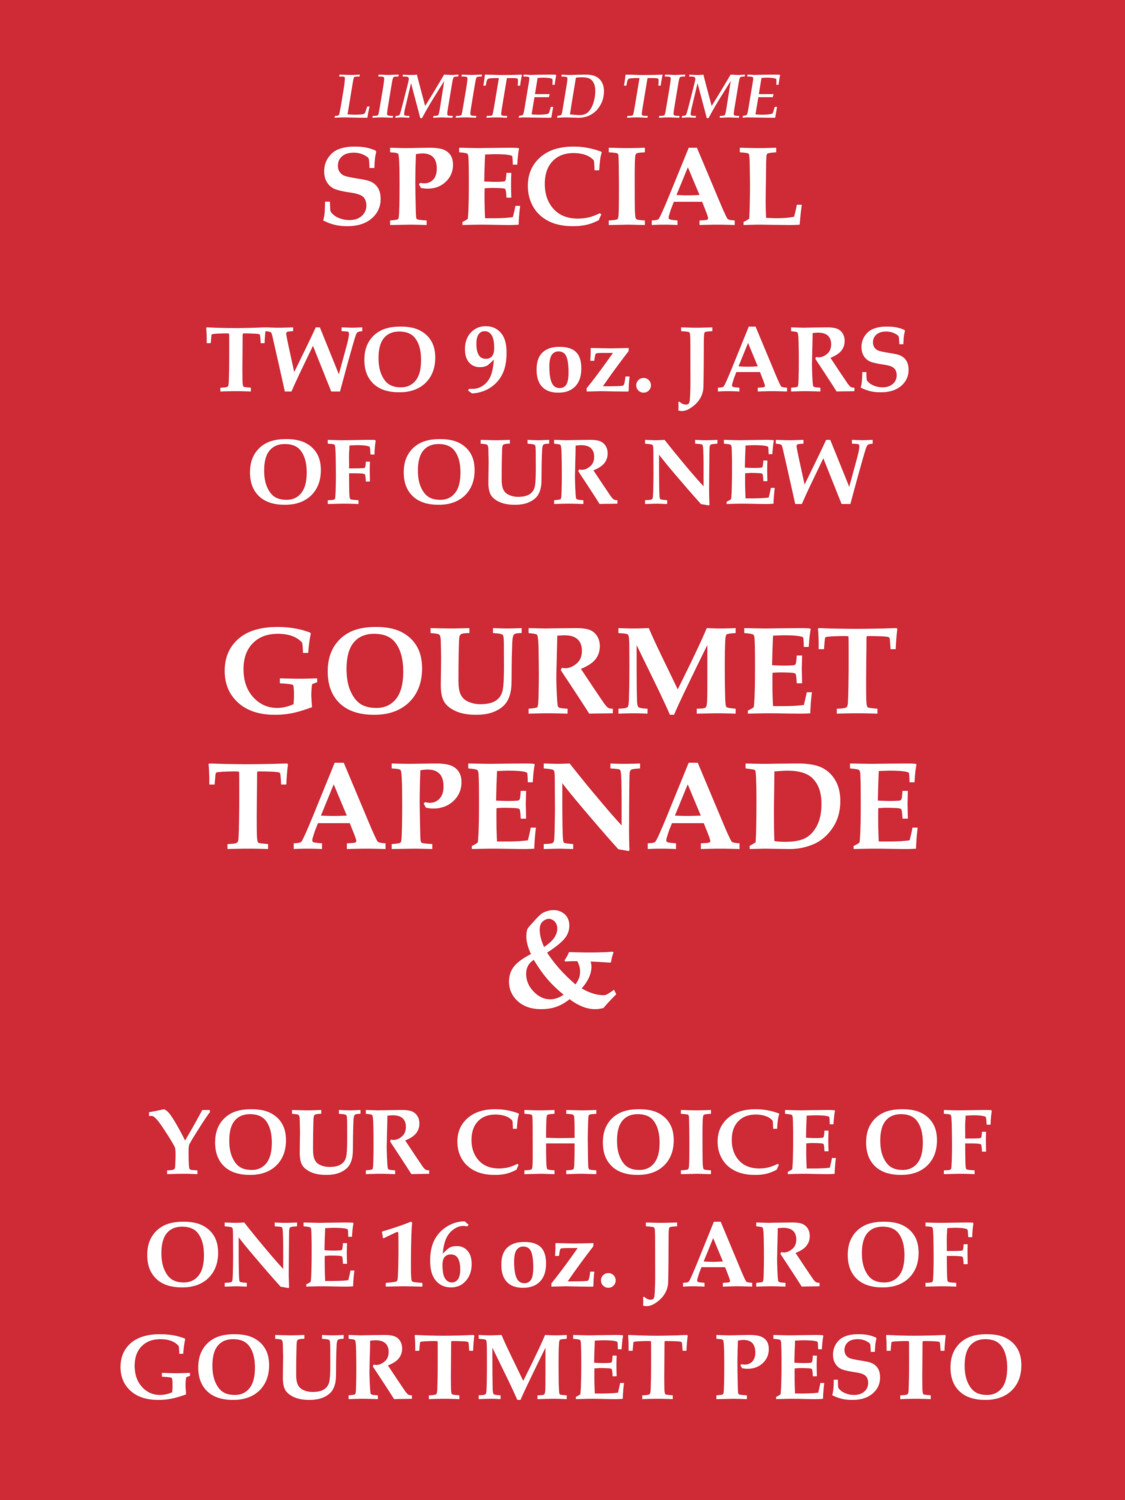 ONLINE SPECIAL: Tapenade Combo Pack